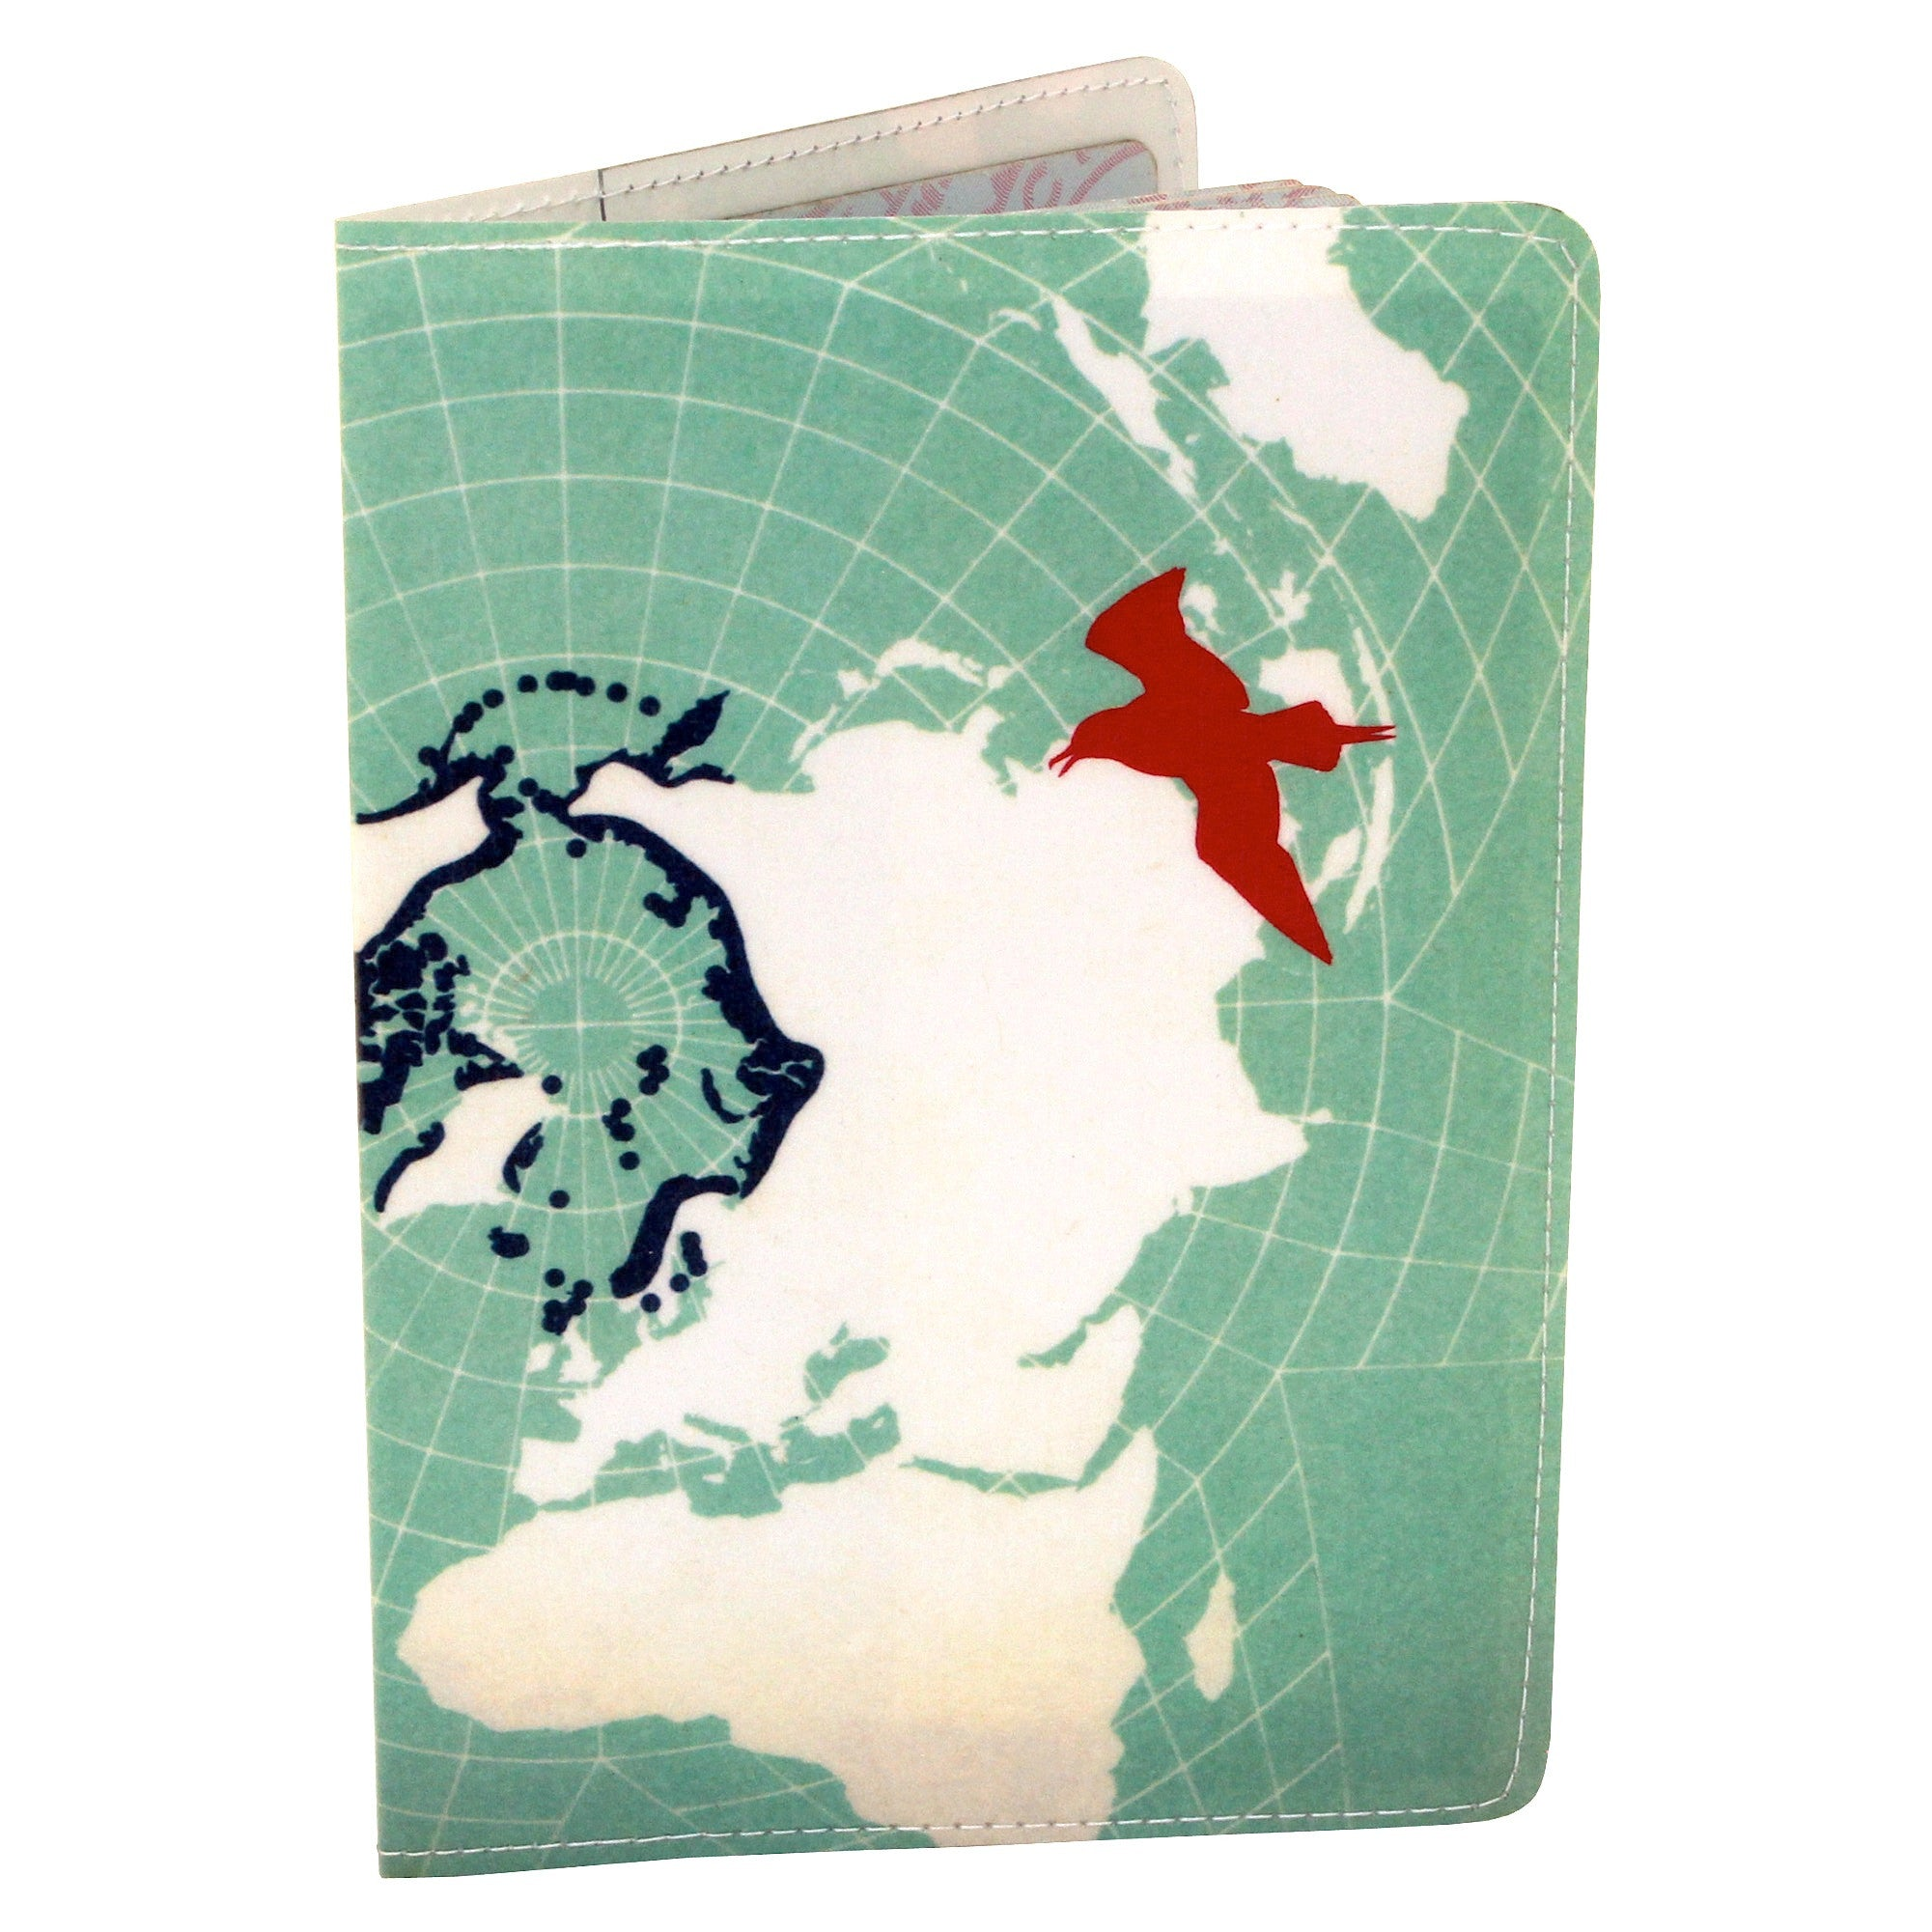 Blue Bird Map Travel Pport Holder Map Holders on map new port richey, map case, map storage, map rack, map beverly hills, map monticello, map of central louisiana,